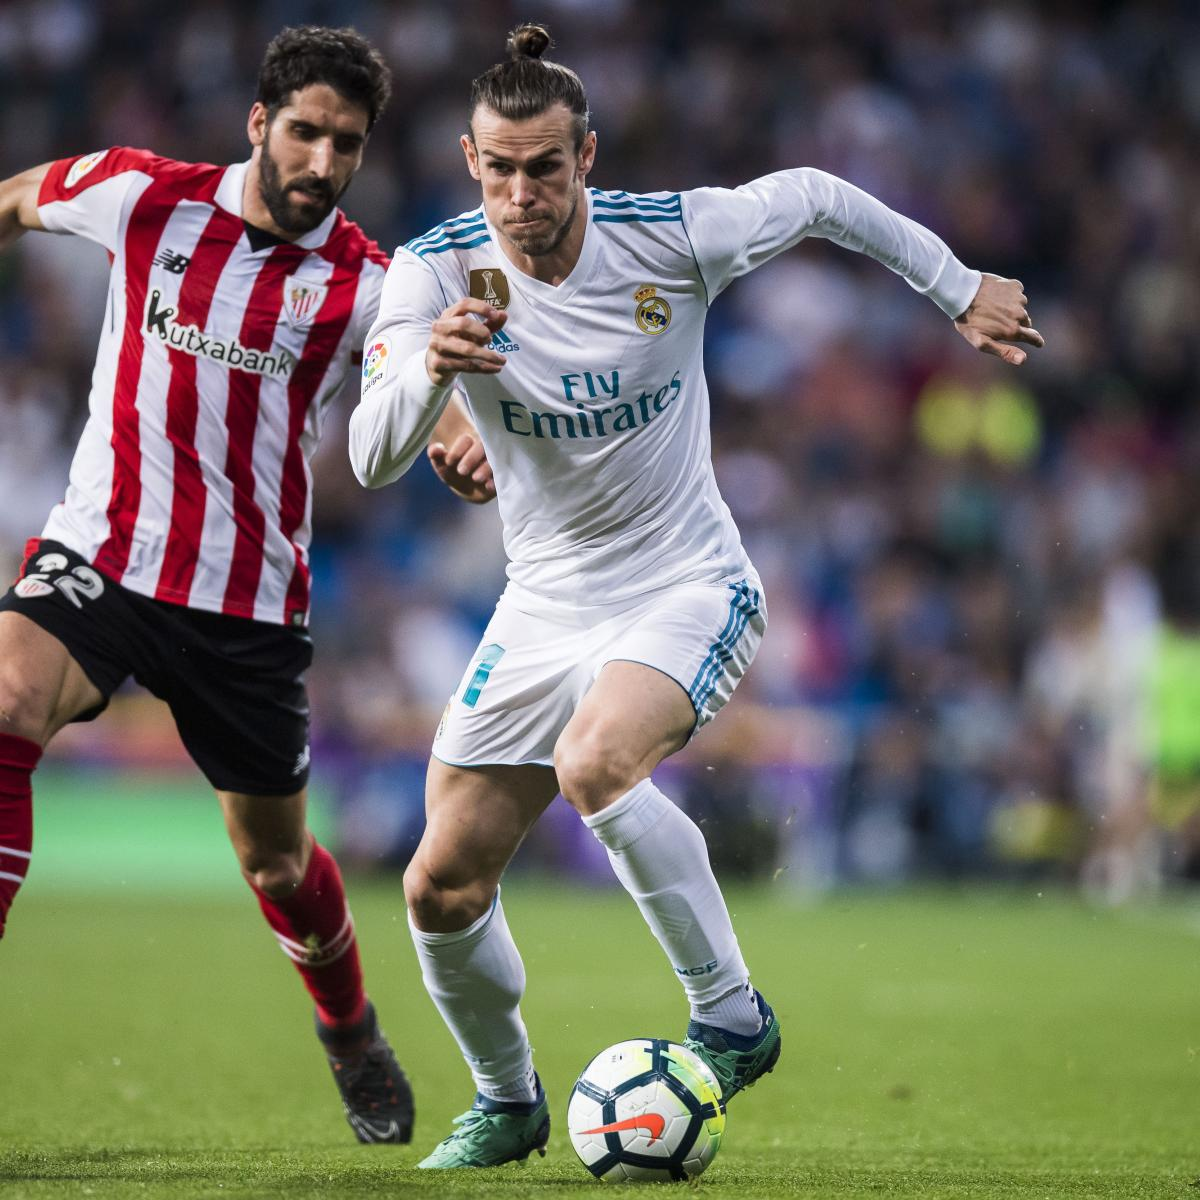 Athletic Bilbao vs. Real Madrid: Spanish Football's 'Old Classic' Rivalry